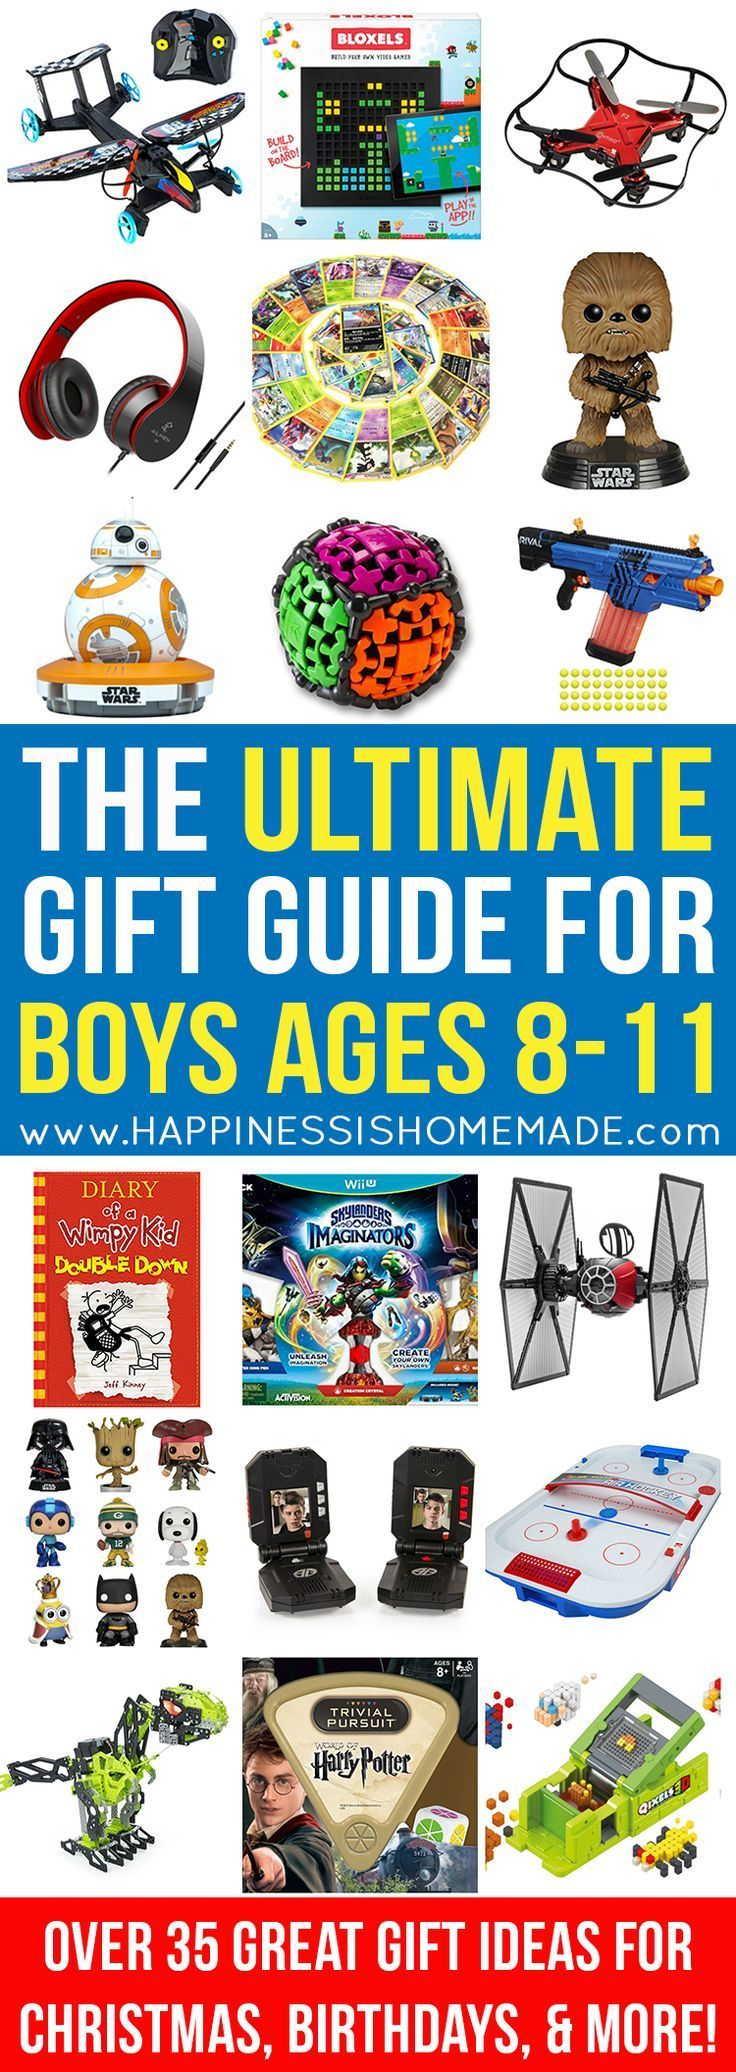 Toys For Boys Age 10 11 : Best images about toys for year old girls on